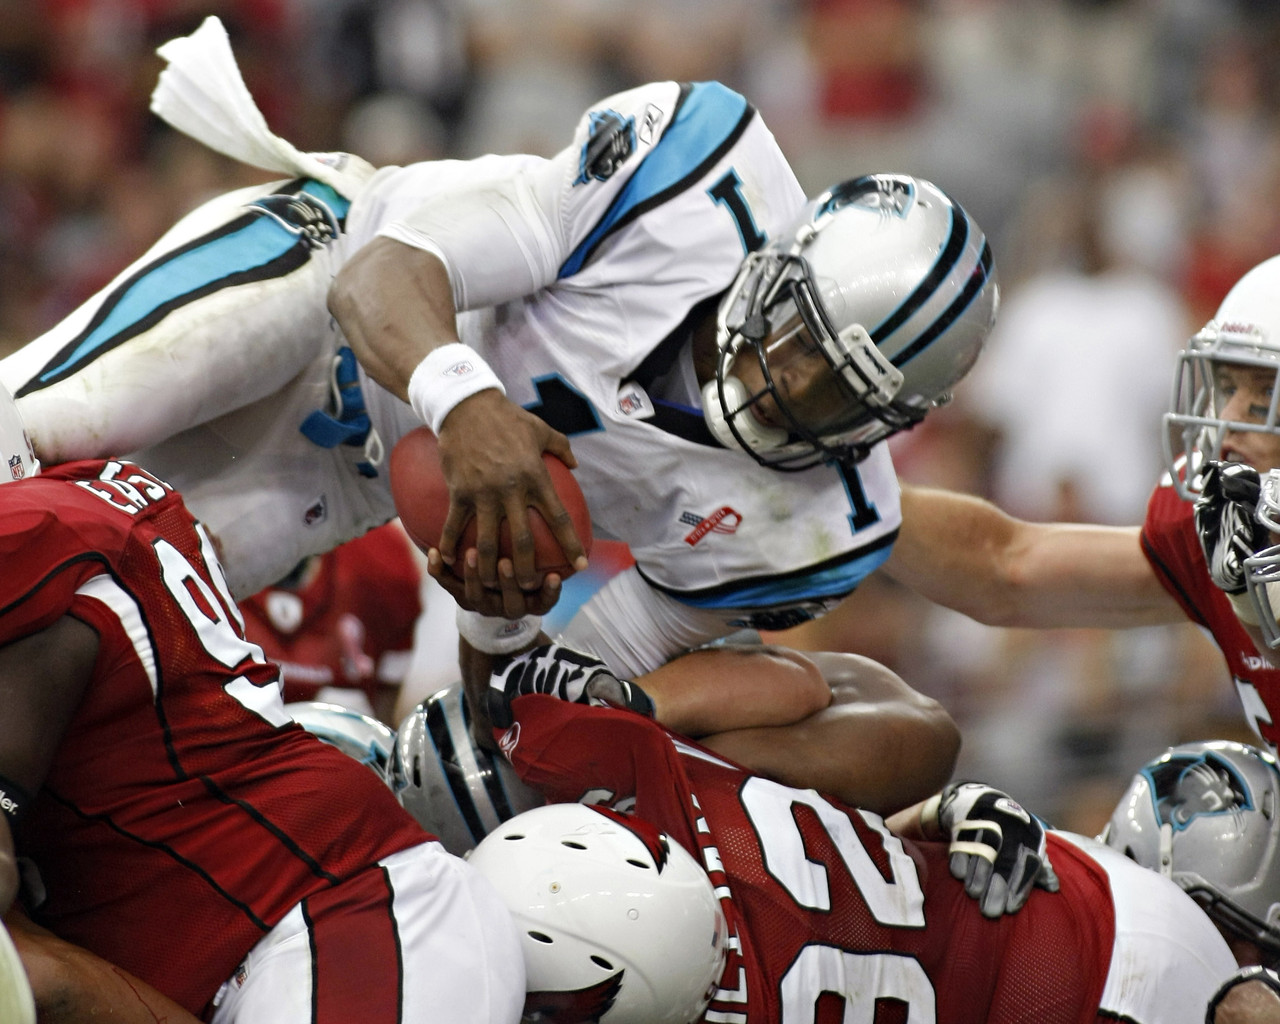 15. Cam Newton vs Arizona Cardinals - Sept. 11, 2011